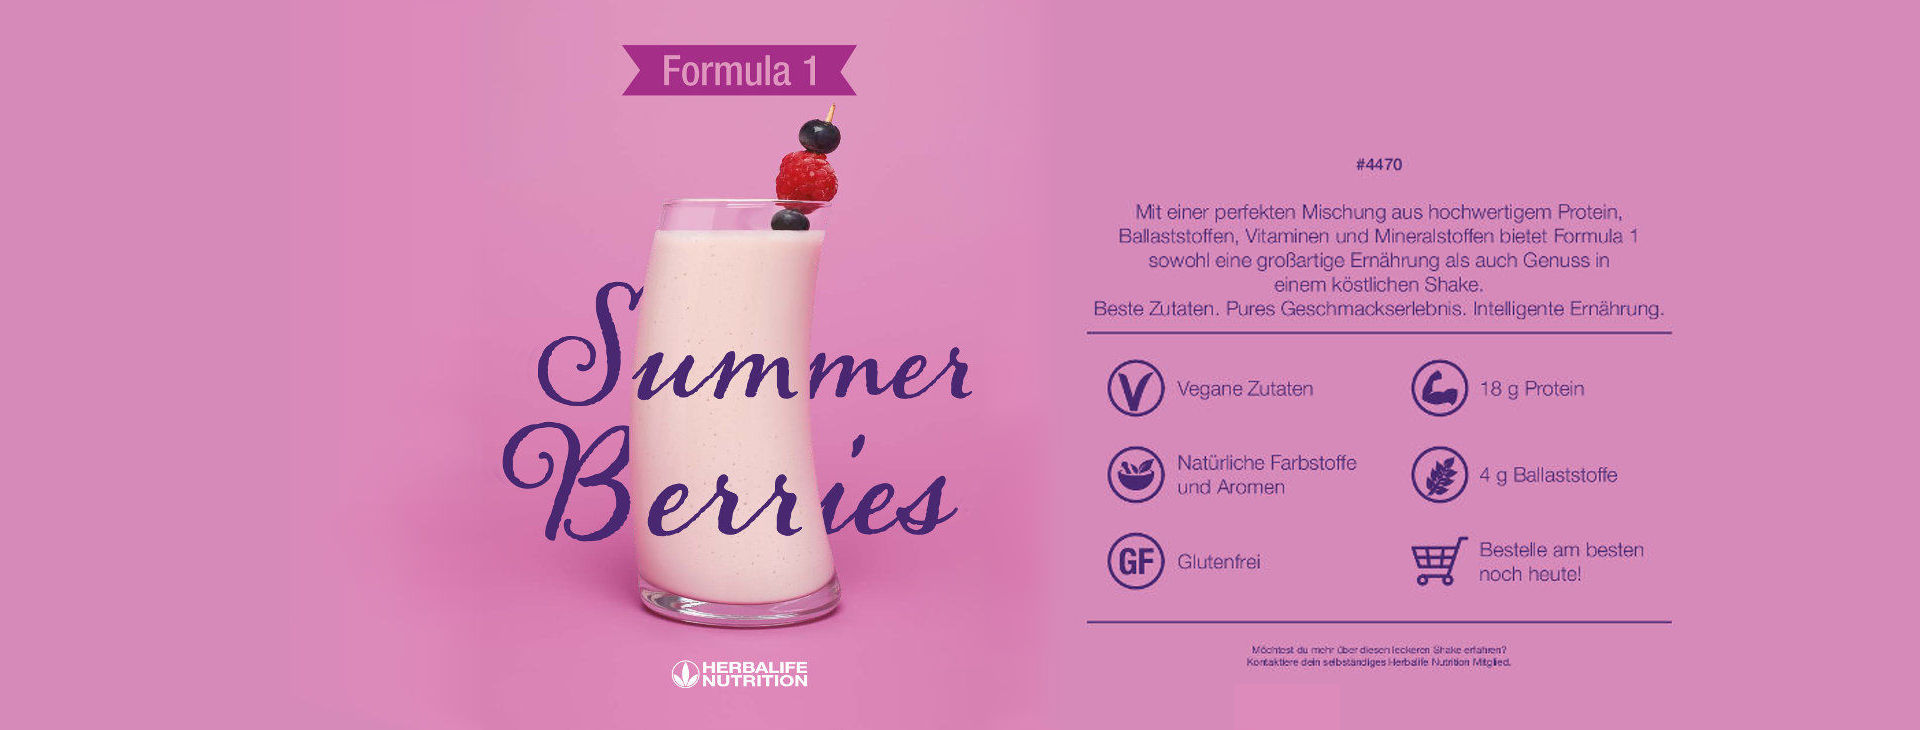 NEU: Formula 1 Summer Berries